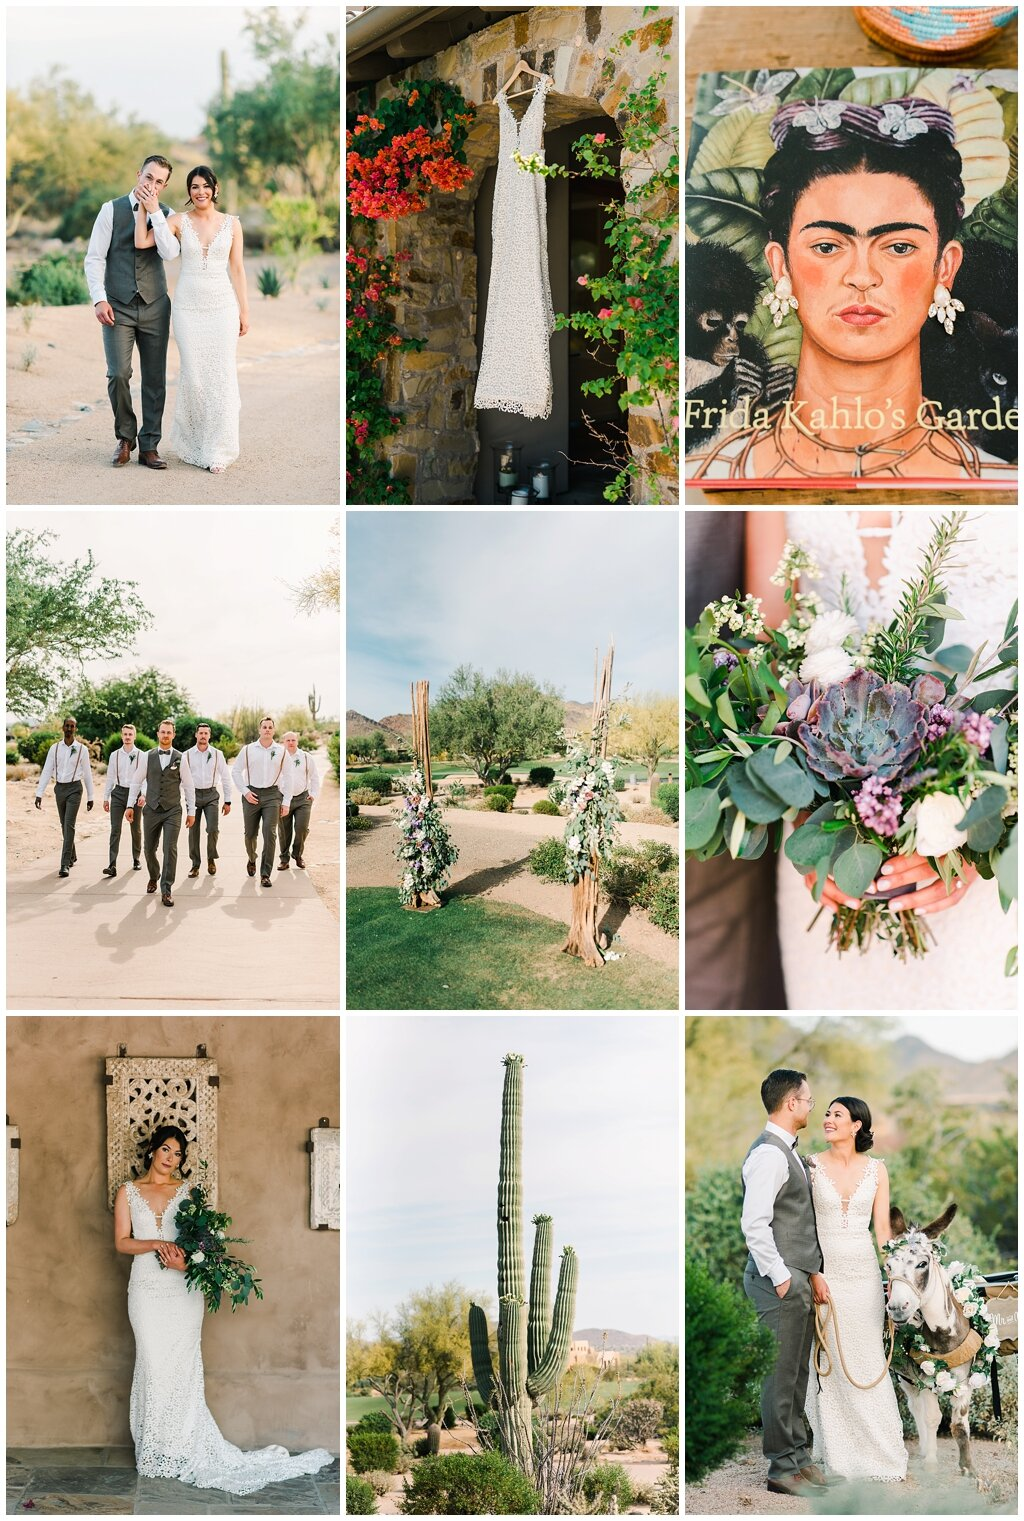 scottsdale-wedding-photographer (25 of 26).jpg